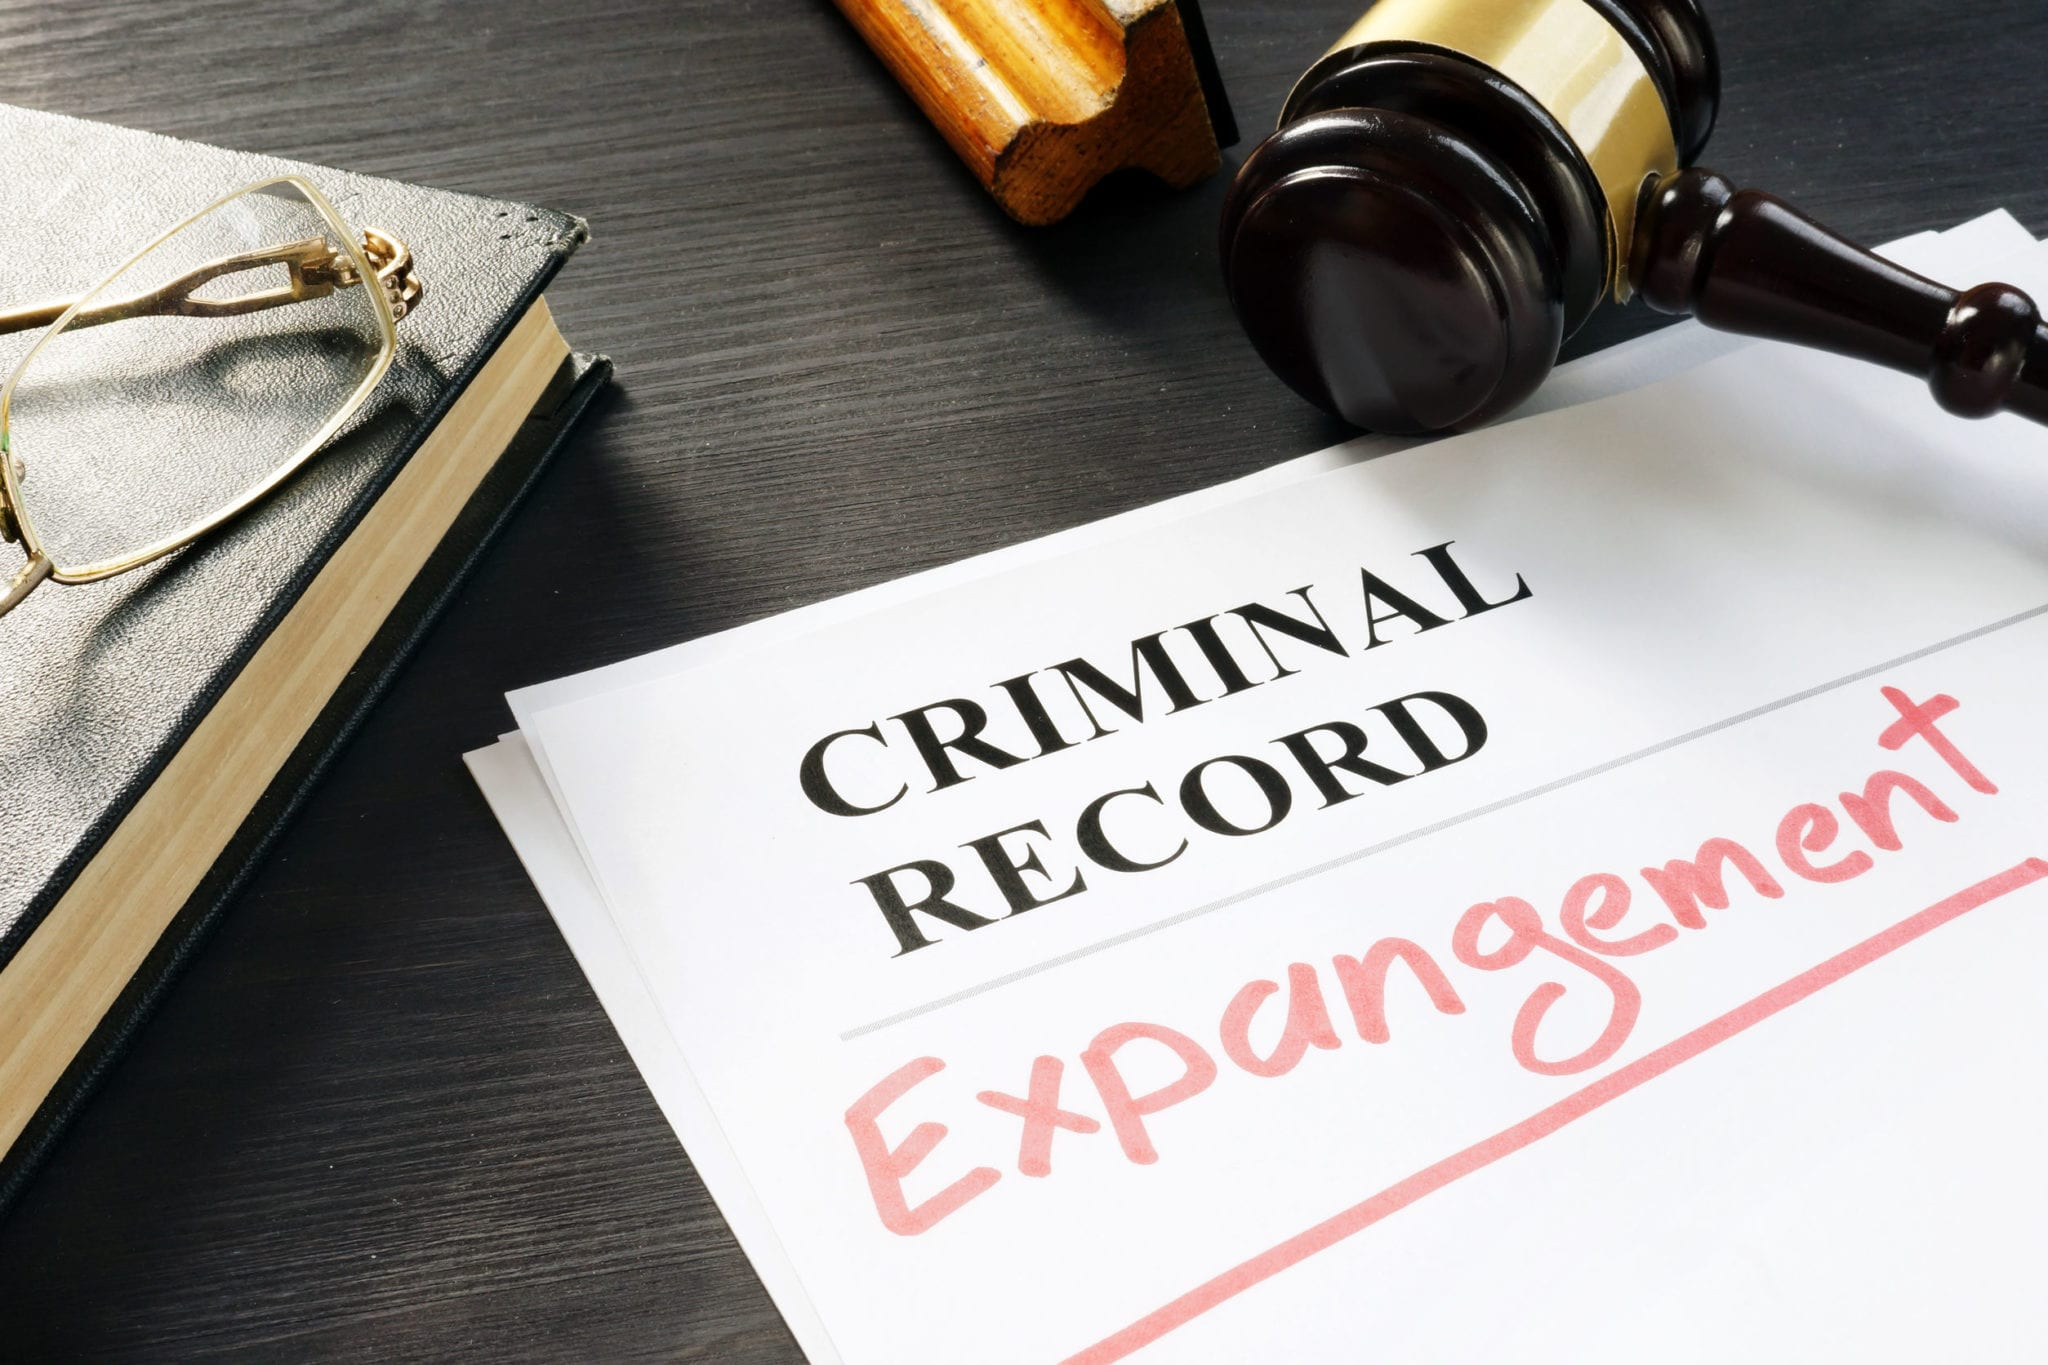 Texas Courts Reopened June 1 — Start Prepping for Record Expunction